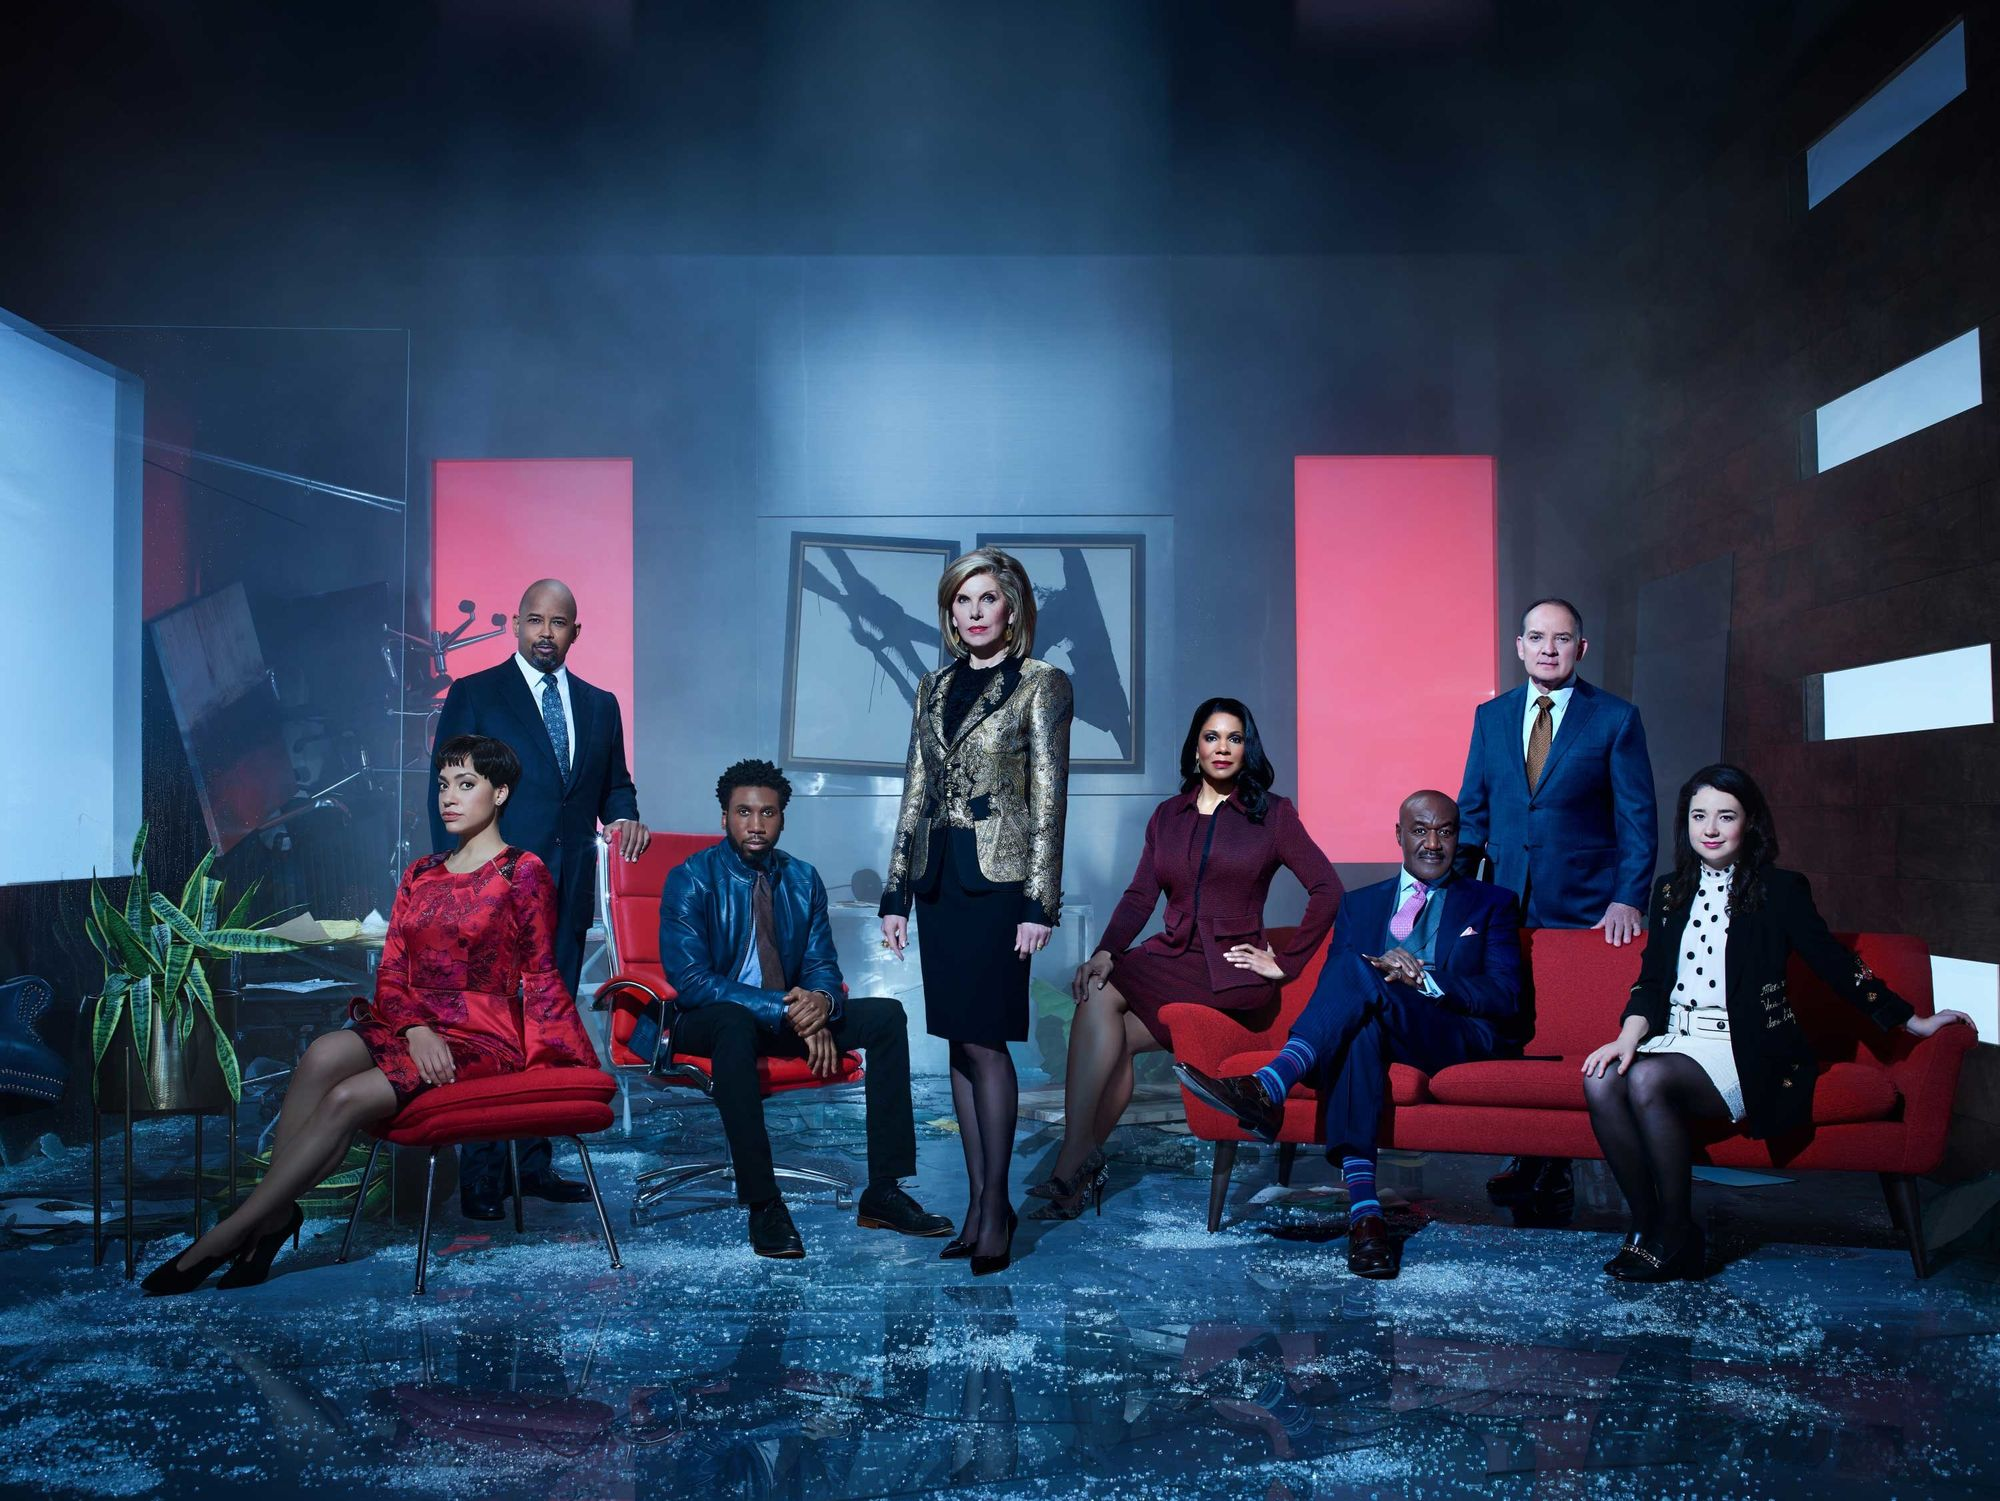 The cast of The Good Fight in a TV promo shot.